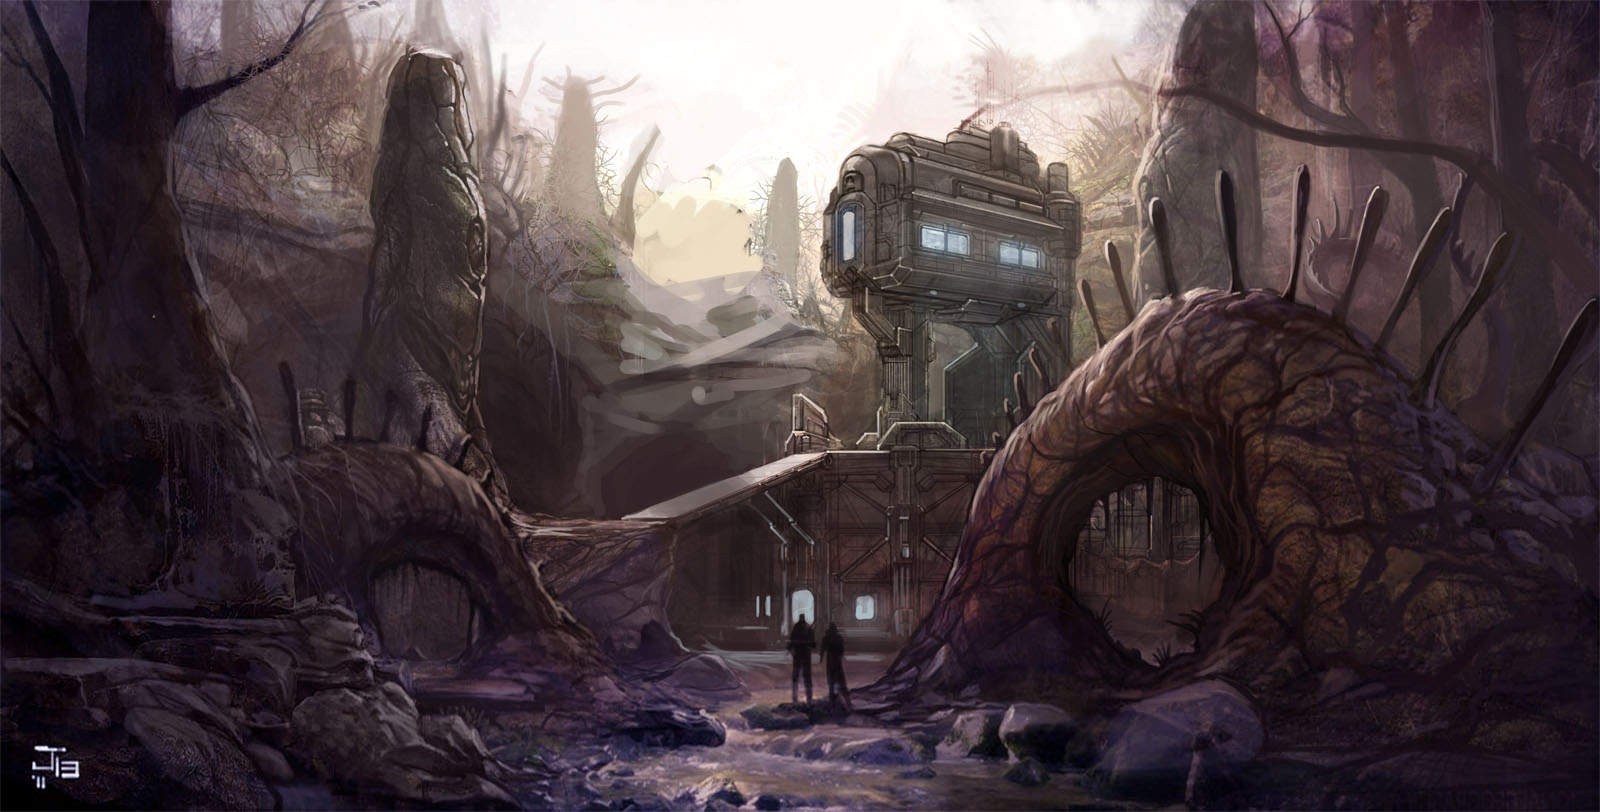 Halo 4 Abandon Concept Art 1600x812